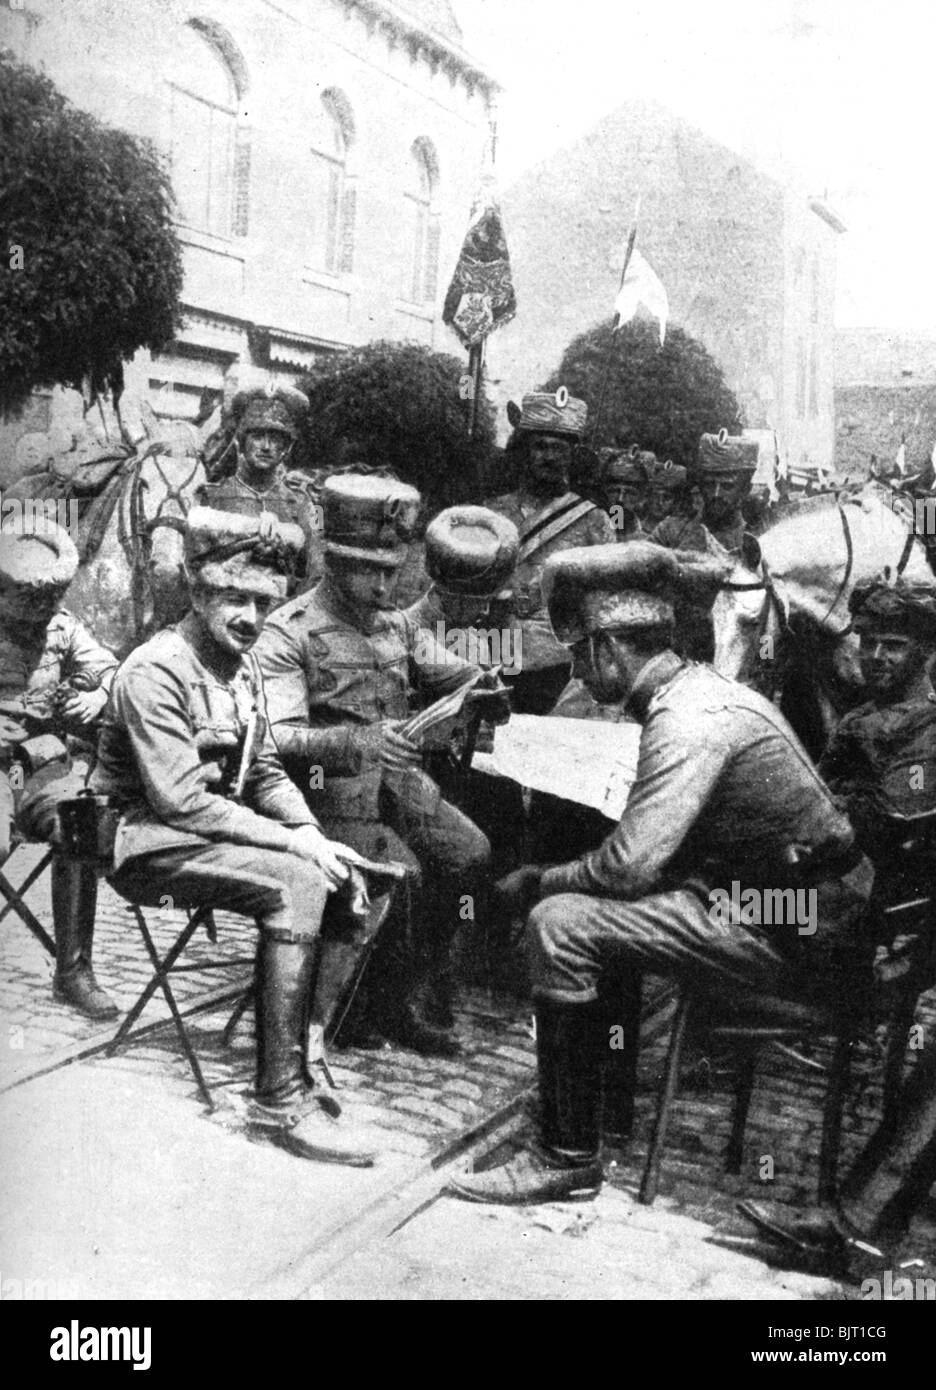 Officers in the Hussars, Chaussee de Louvain, Brussels, First World War, 1914. - Stock Image